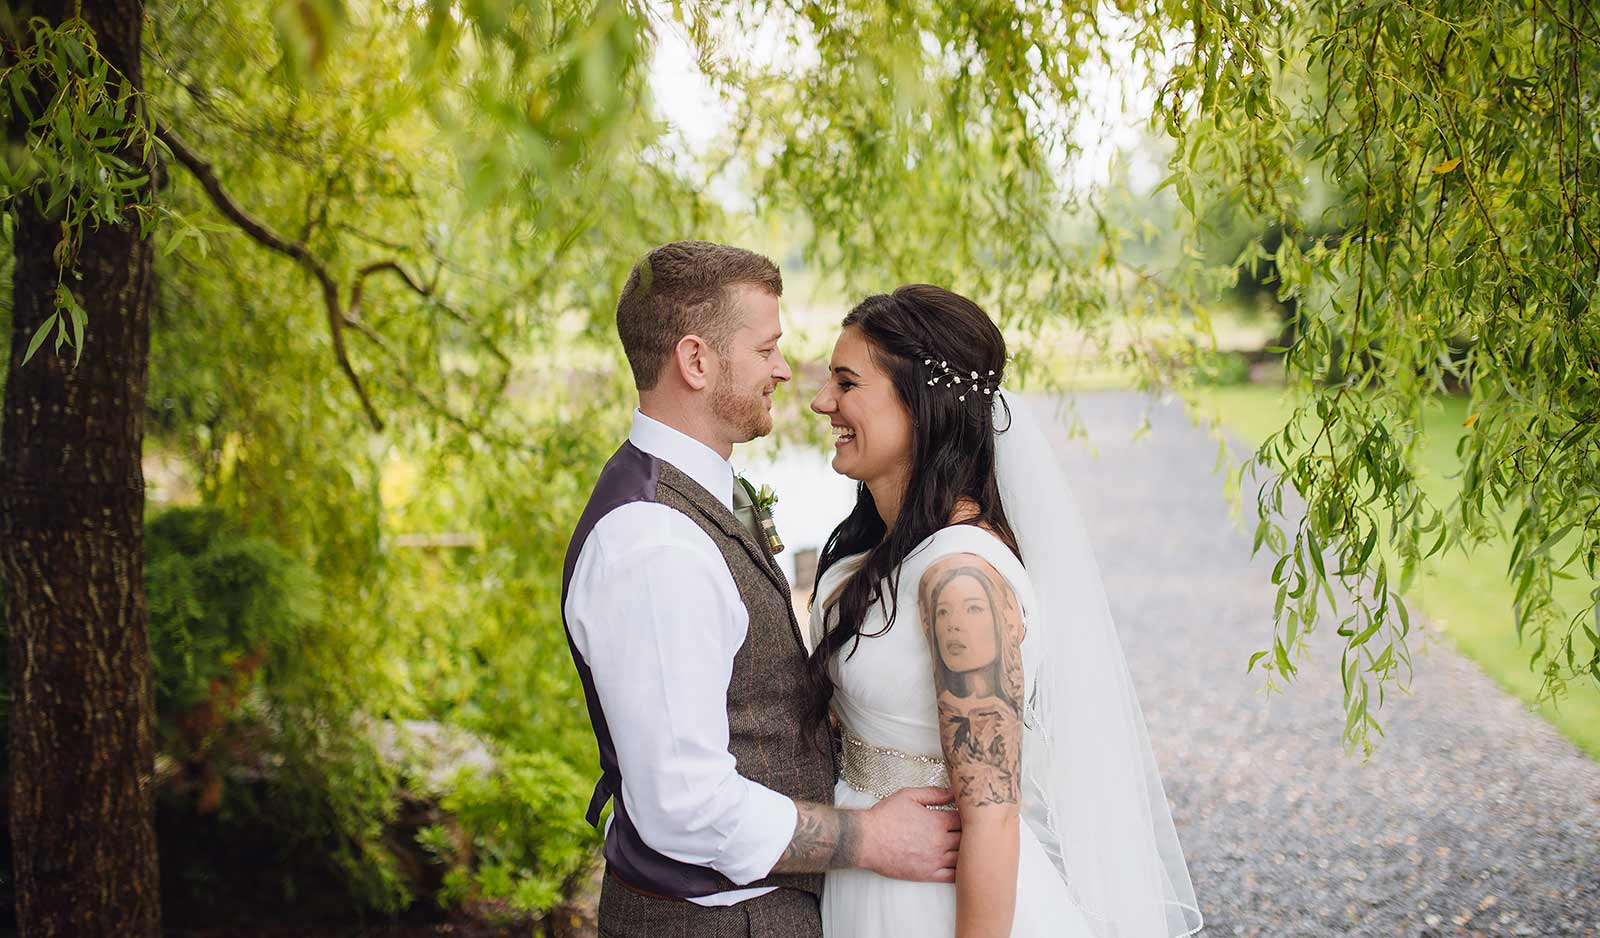 King Arthur wedding photographer Swansea South Wales